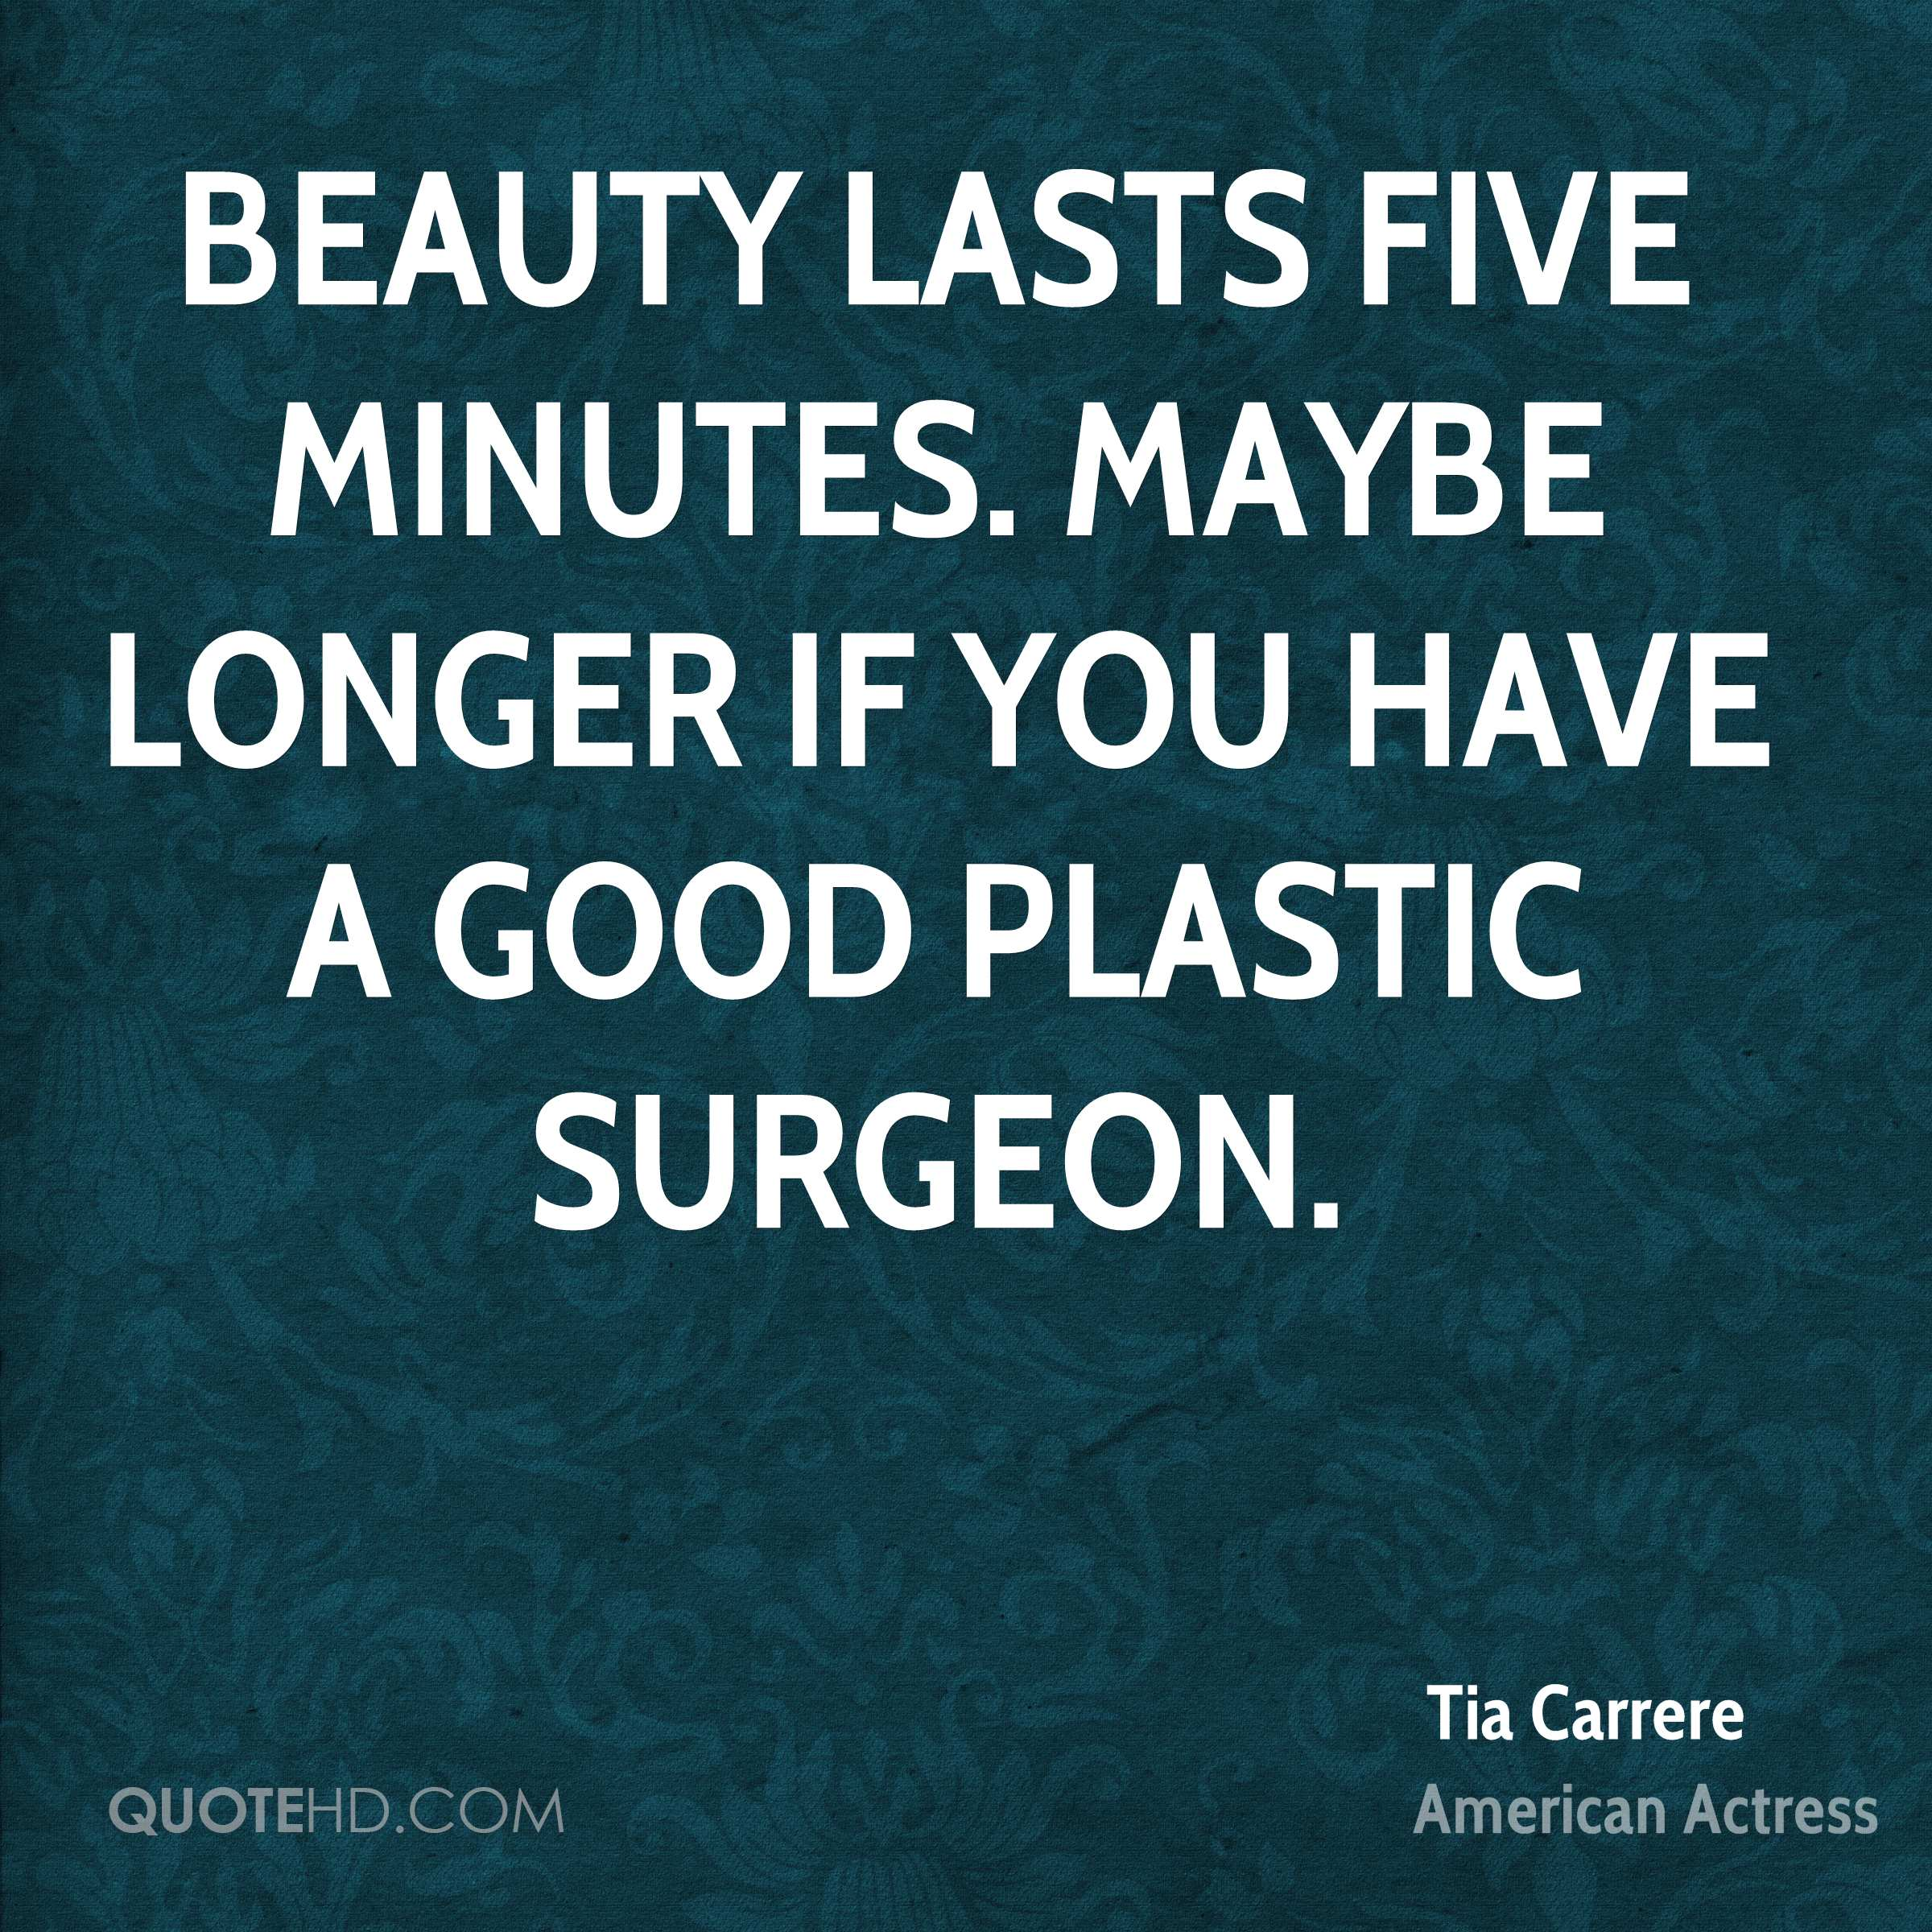 Beauty lasts five minutes. Maybe longer if you have a good plastic surgeon.